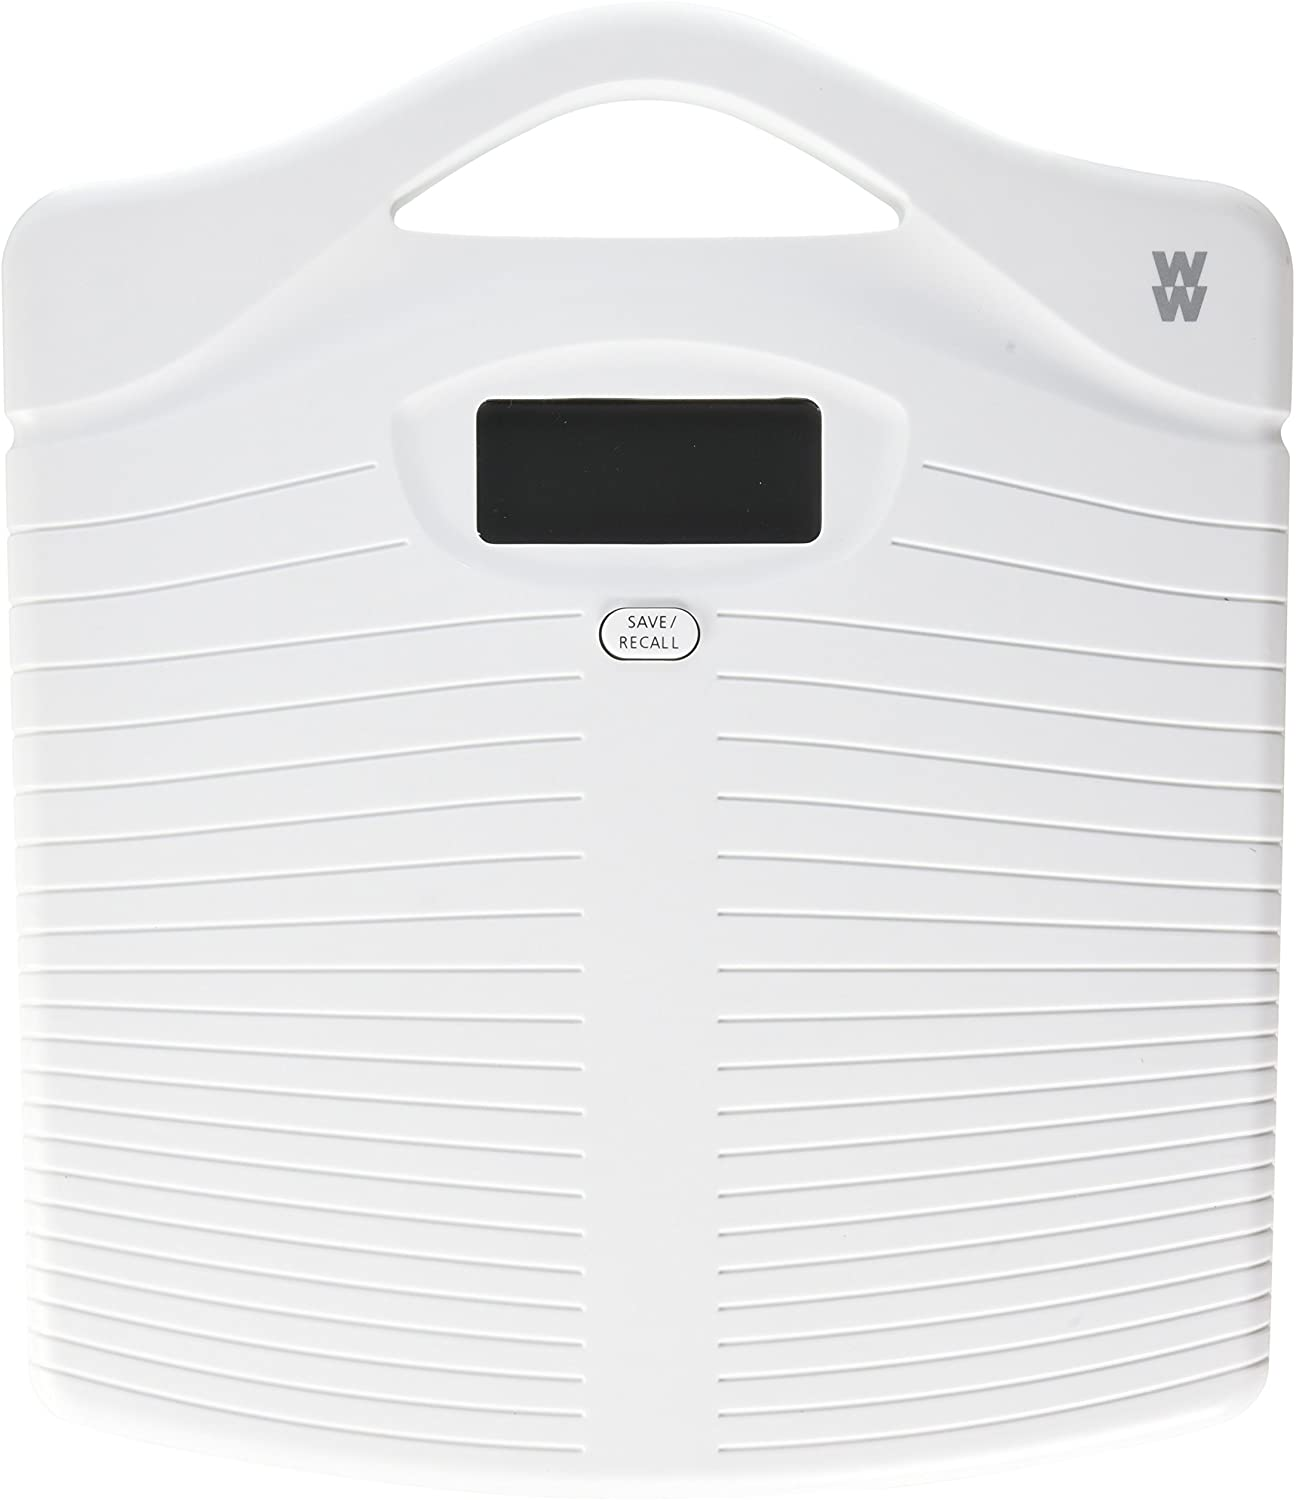 WW Scales by Conair Portable Precision Electronic Bathroom Scale with Handle, 330 lb. capacity, White